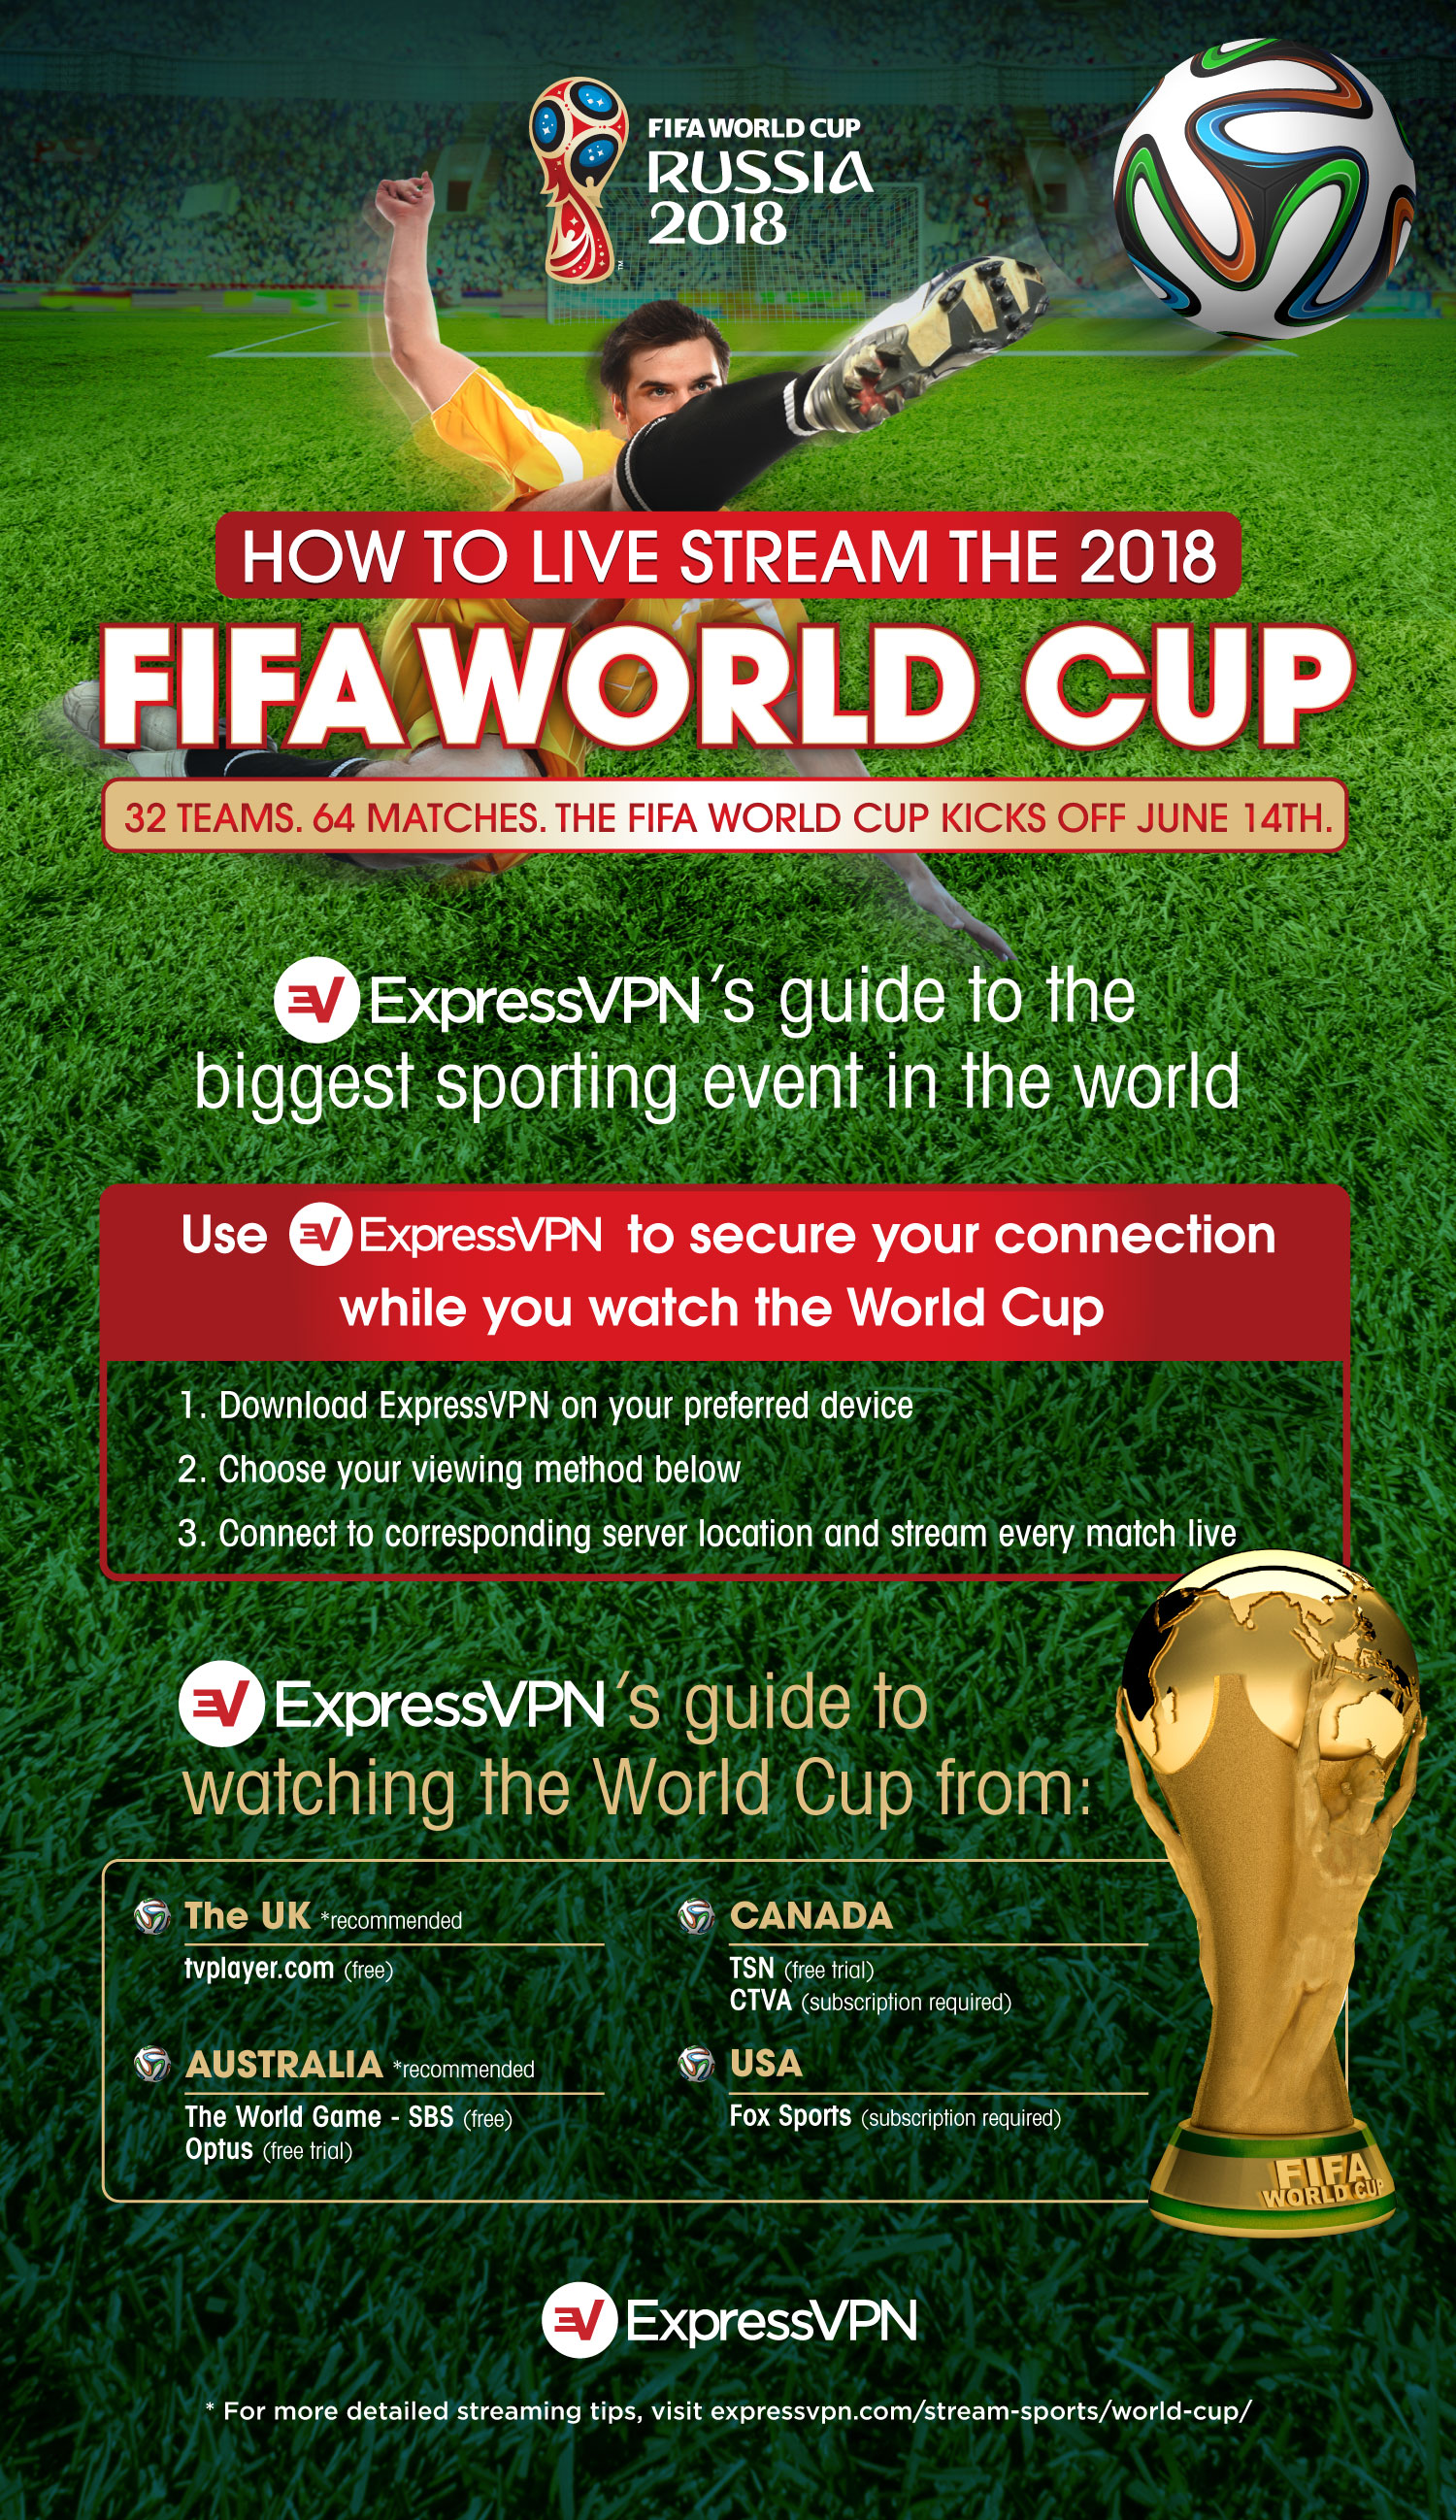 How-to-live-stream-the-World-Cup-2018